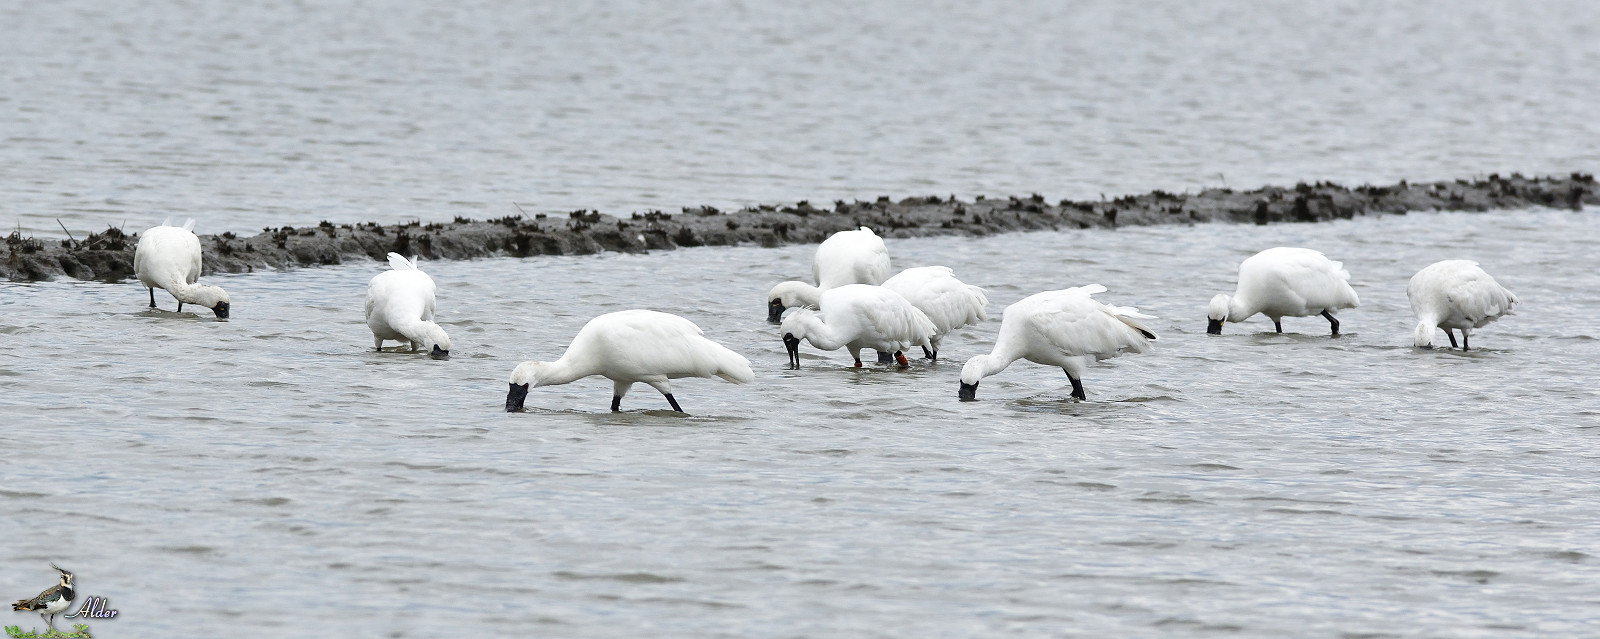 Black-faced_Spoonbill_5076